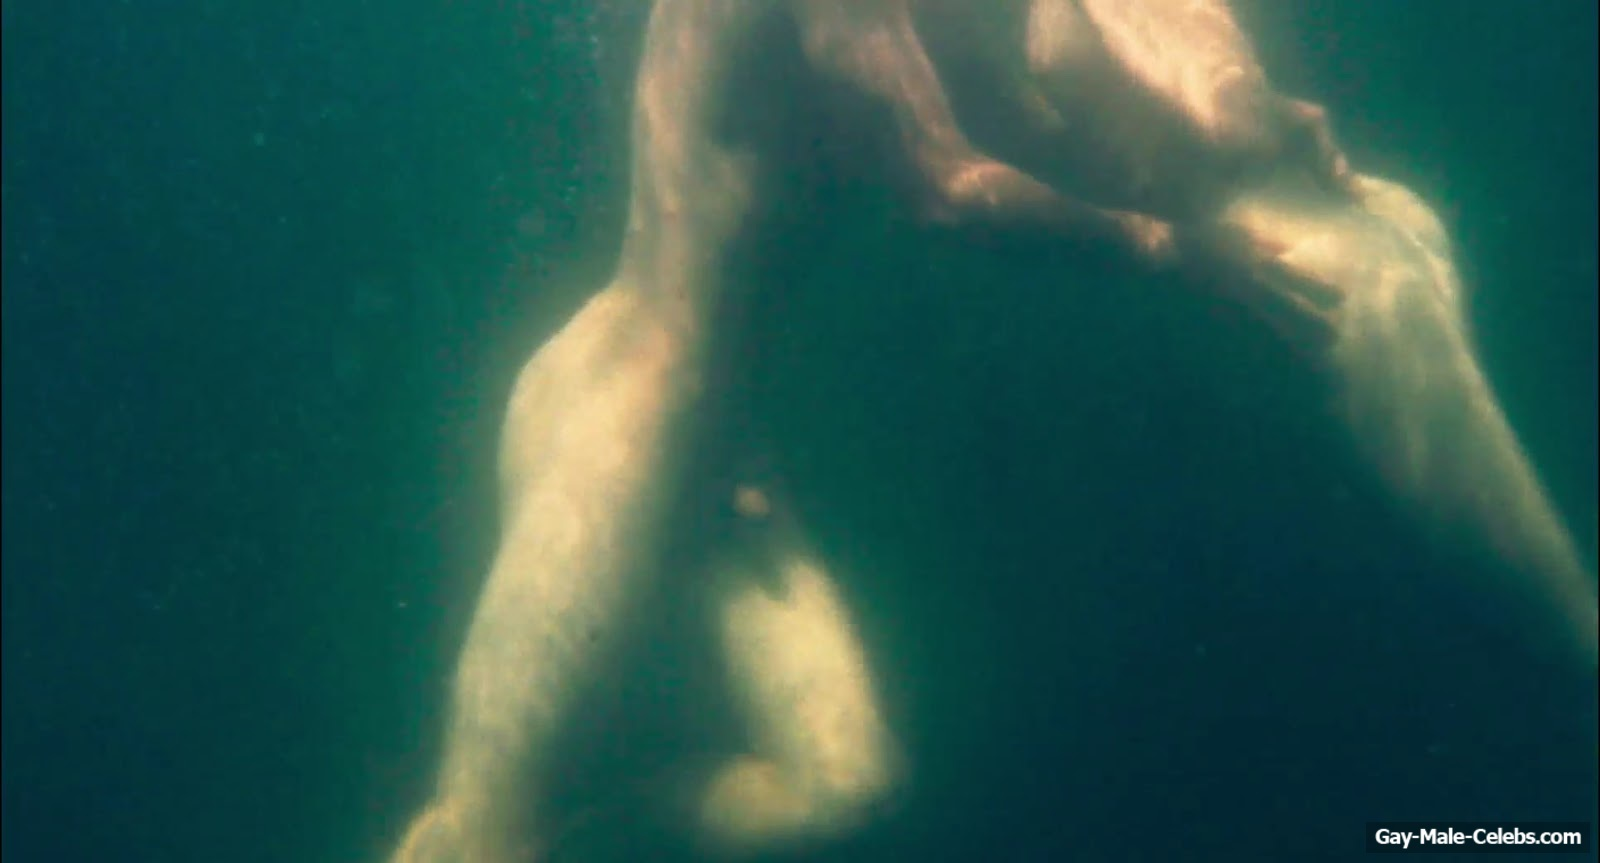 Seems magnificent gay naked ass underwater seems remarkable